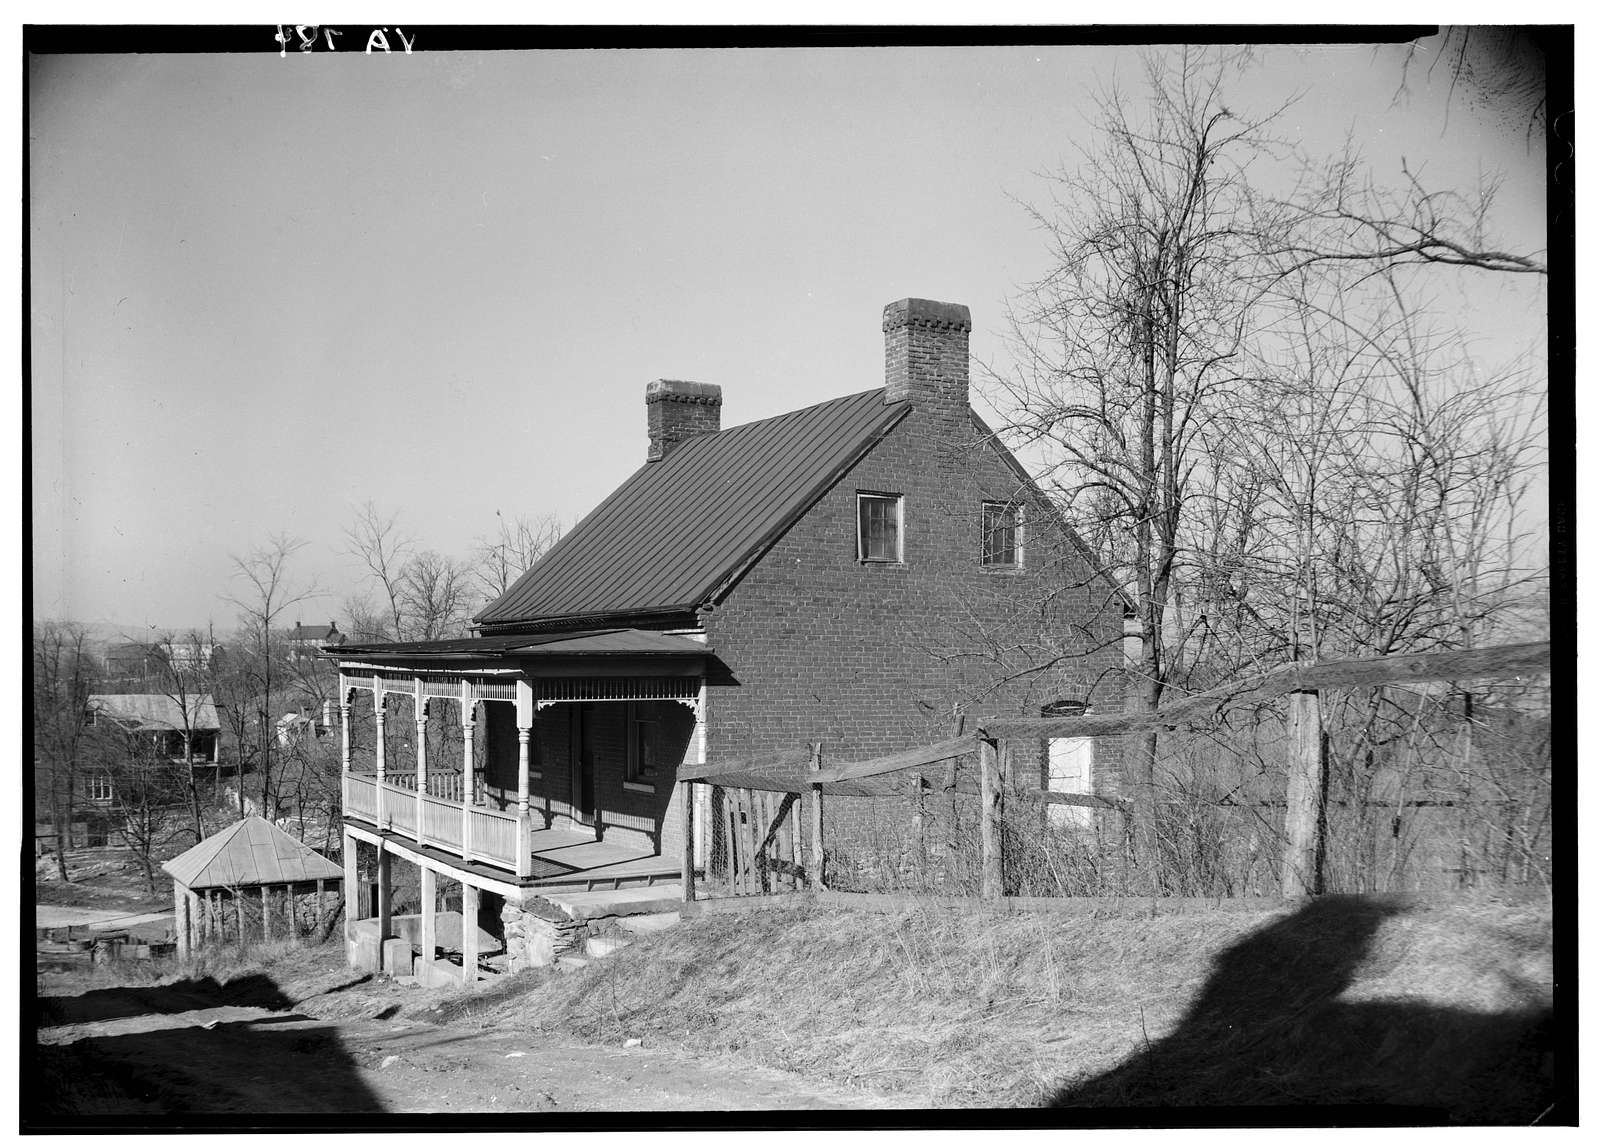 Hector Hough House, Main Street Hill, Waterford, Loudoun County, VA